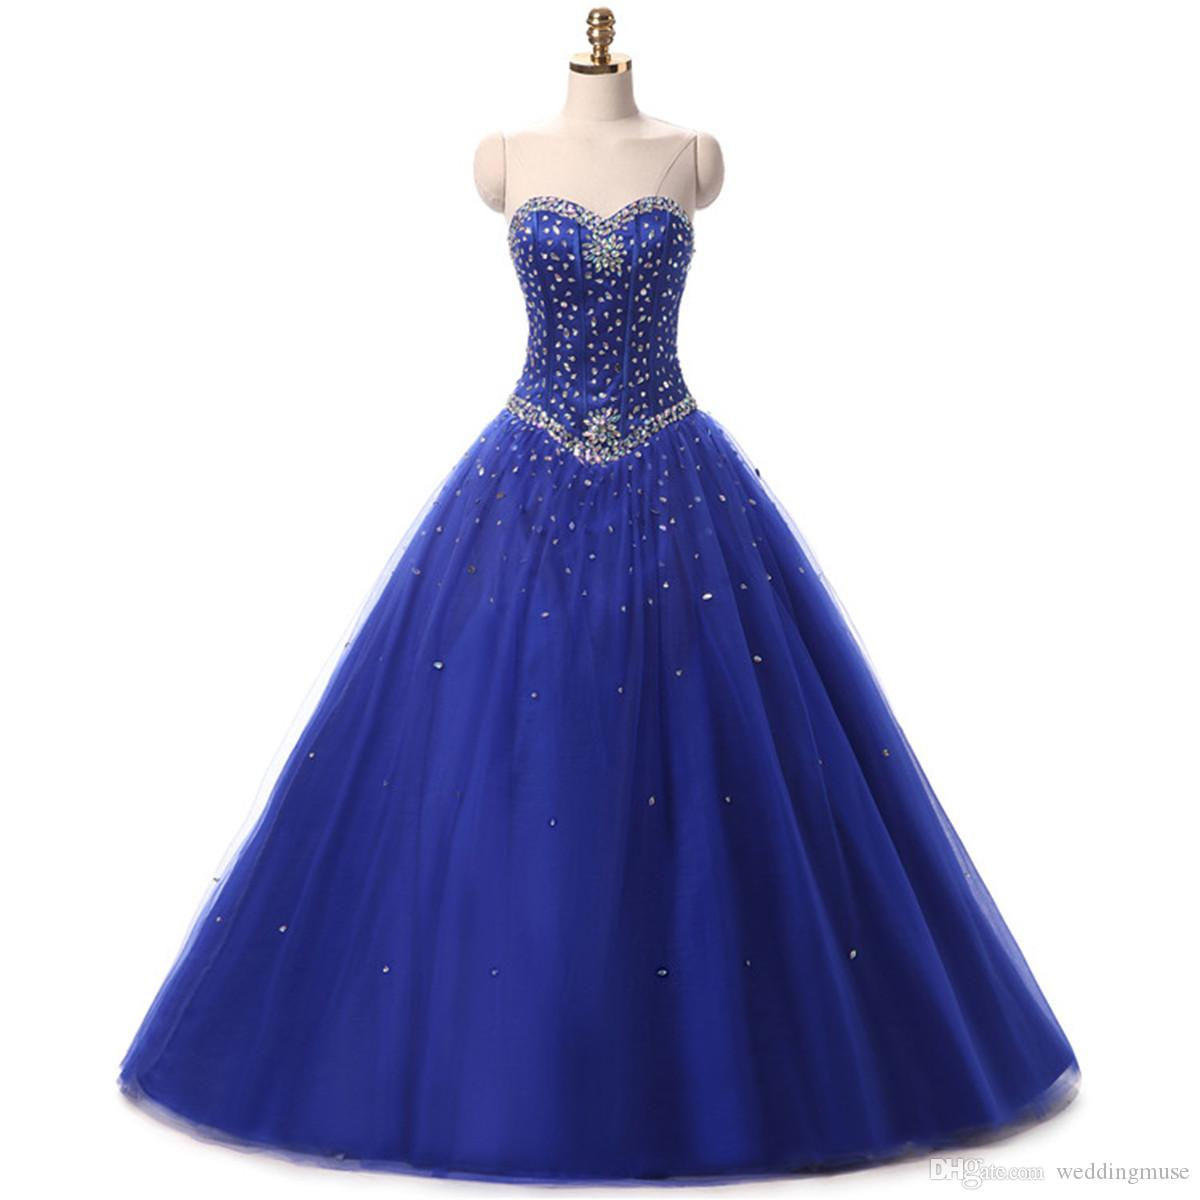 Royal Blue Ball Gown Prom Dresses Quinceanera Dress With Jacket Beads Corset Fitted Fare Sweet 16 Girls Party Wear